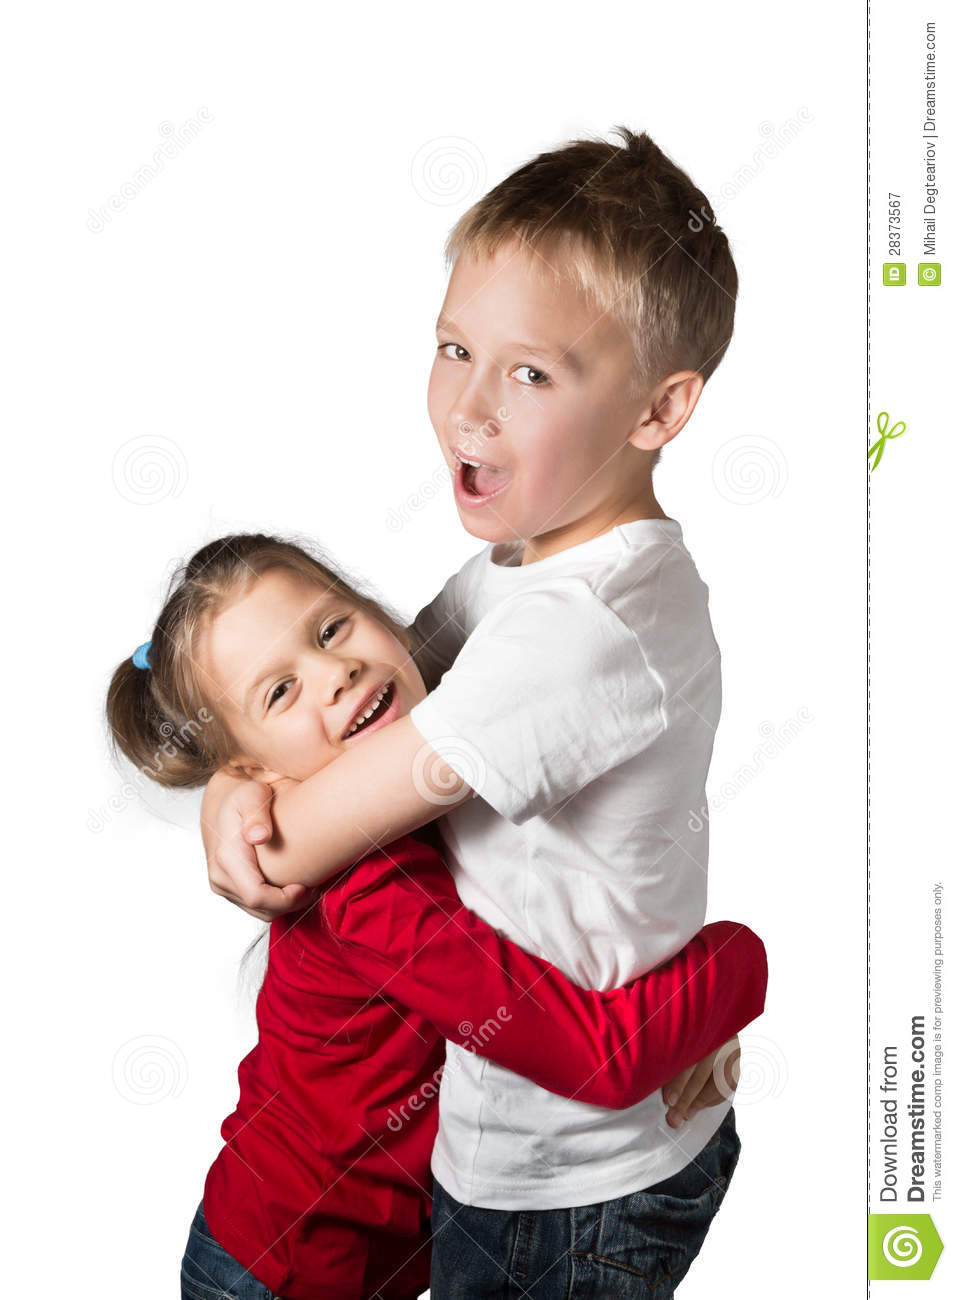 Boy And Girl Bedroom Decor: Boy And Girl Hugging Stock Image. Image Of Casual, People